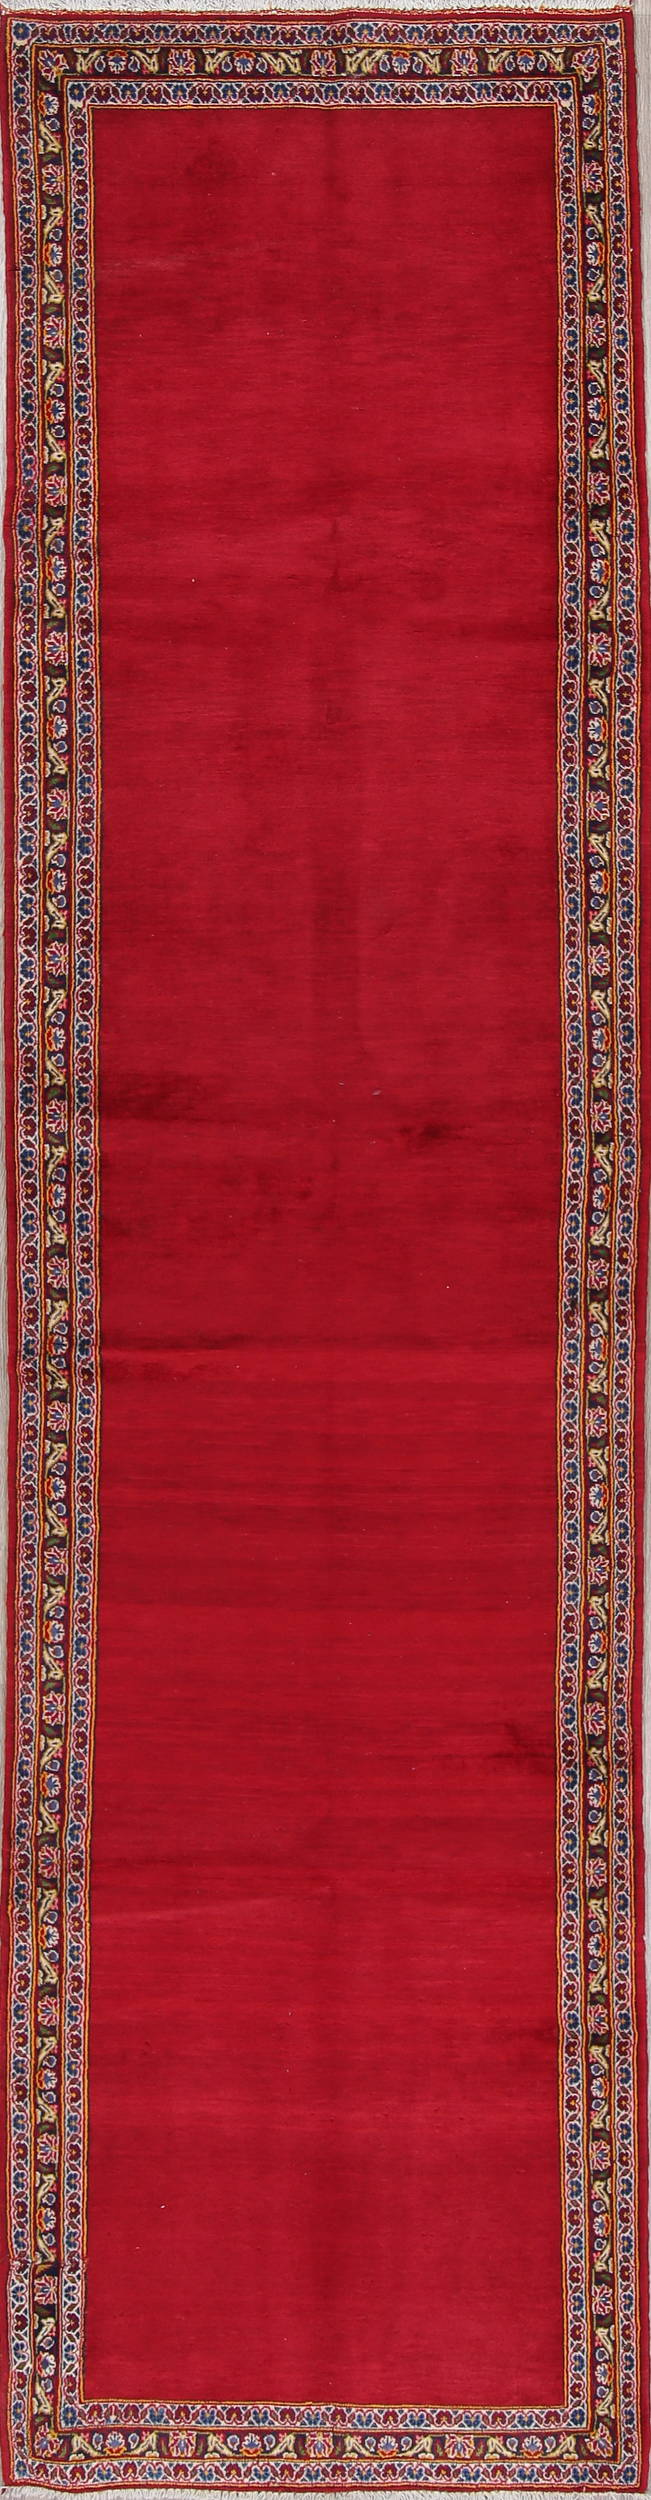 Solid Red Kashan Persian Hand-Knotted 3x13 Wool Runner Rug